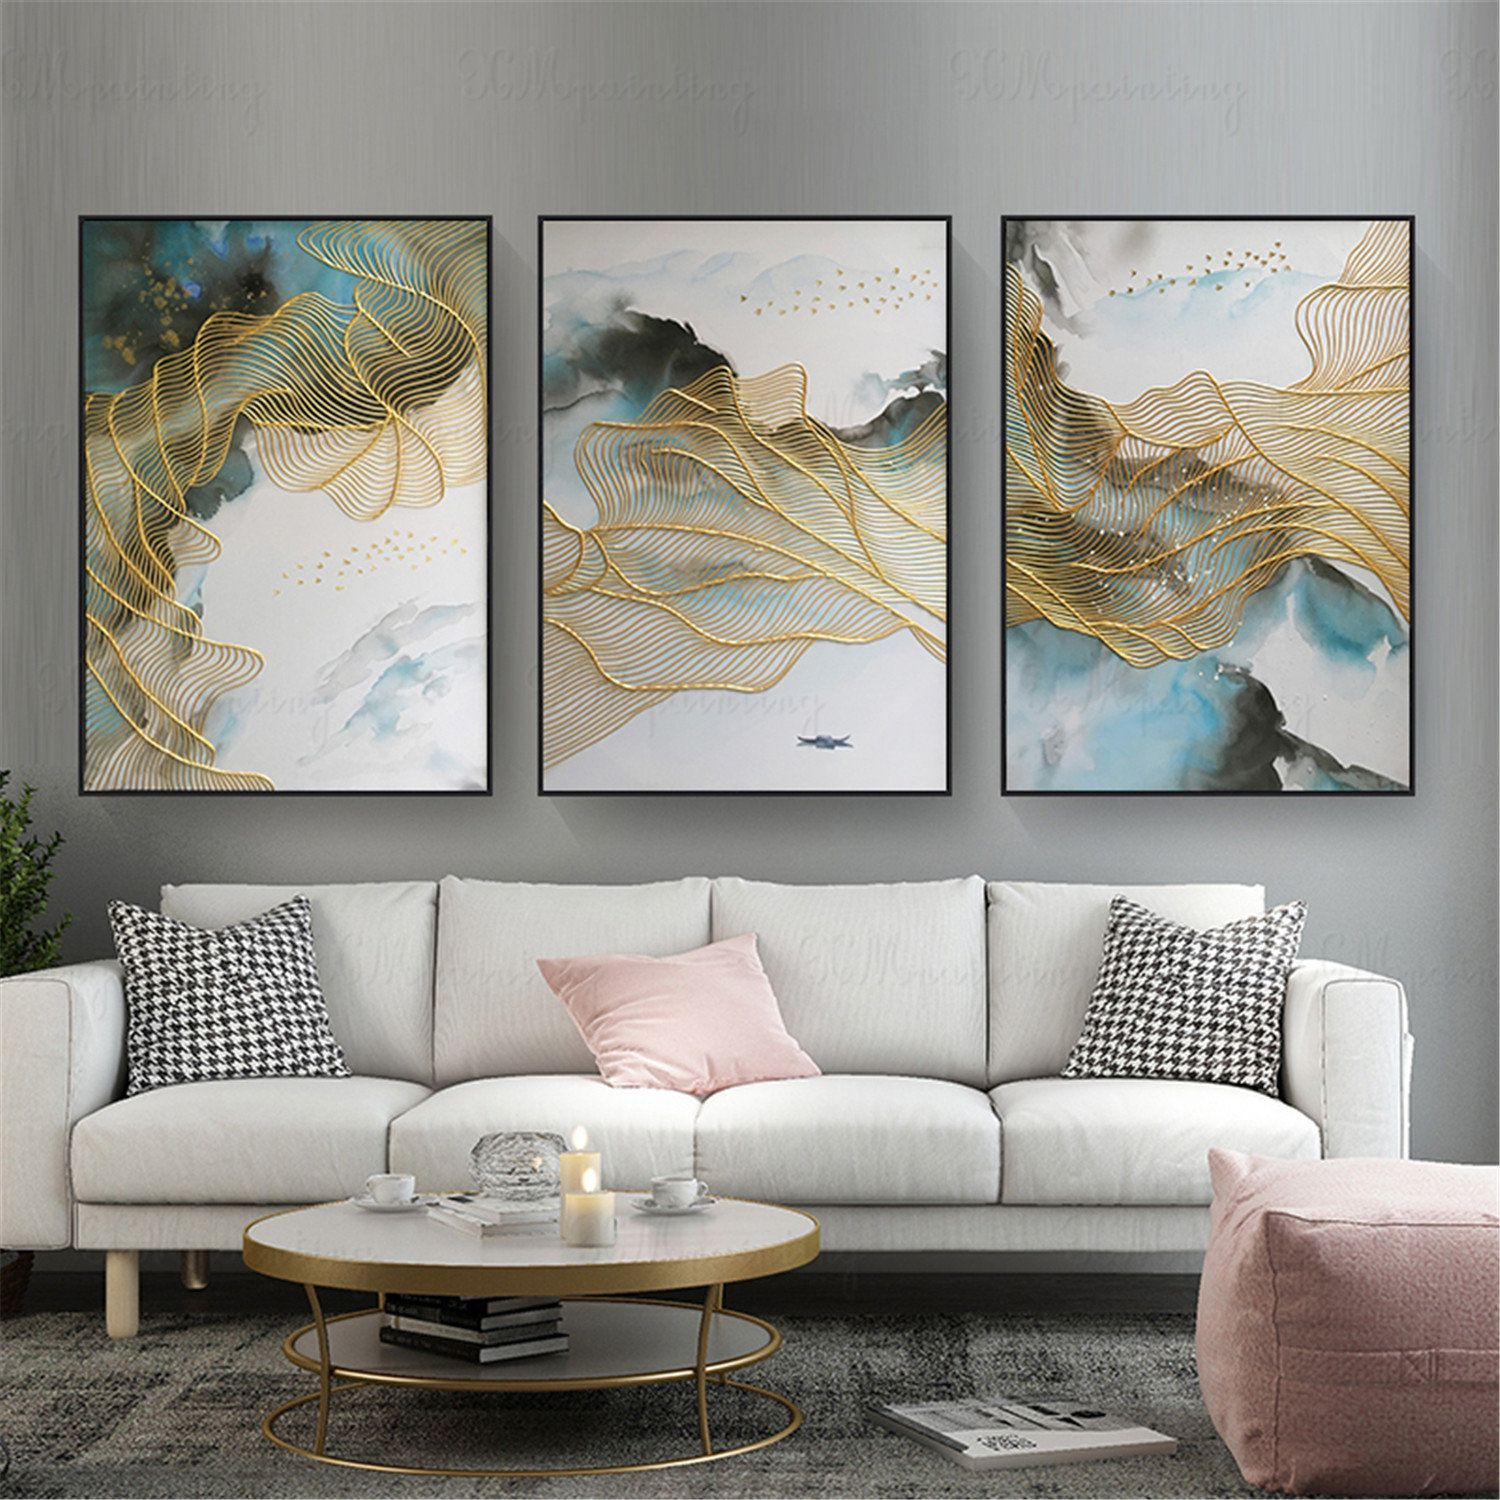 Framed 3 Pieces Gold Lines Abstract Painting Handmade Canvas Etsy Living Room Pictures Wall Decor Living Room Wall Decor Bedroom